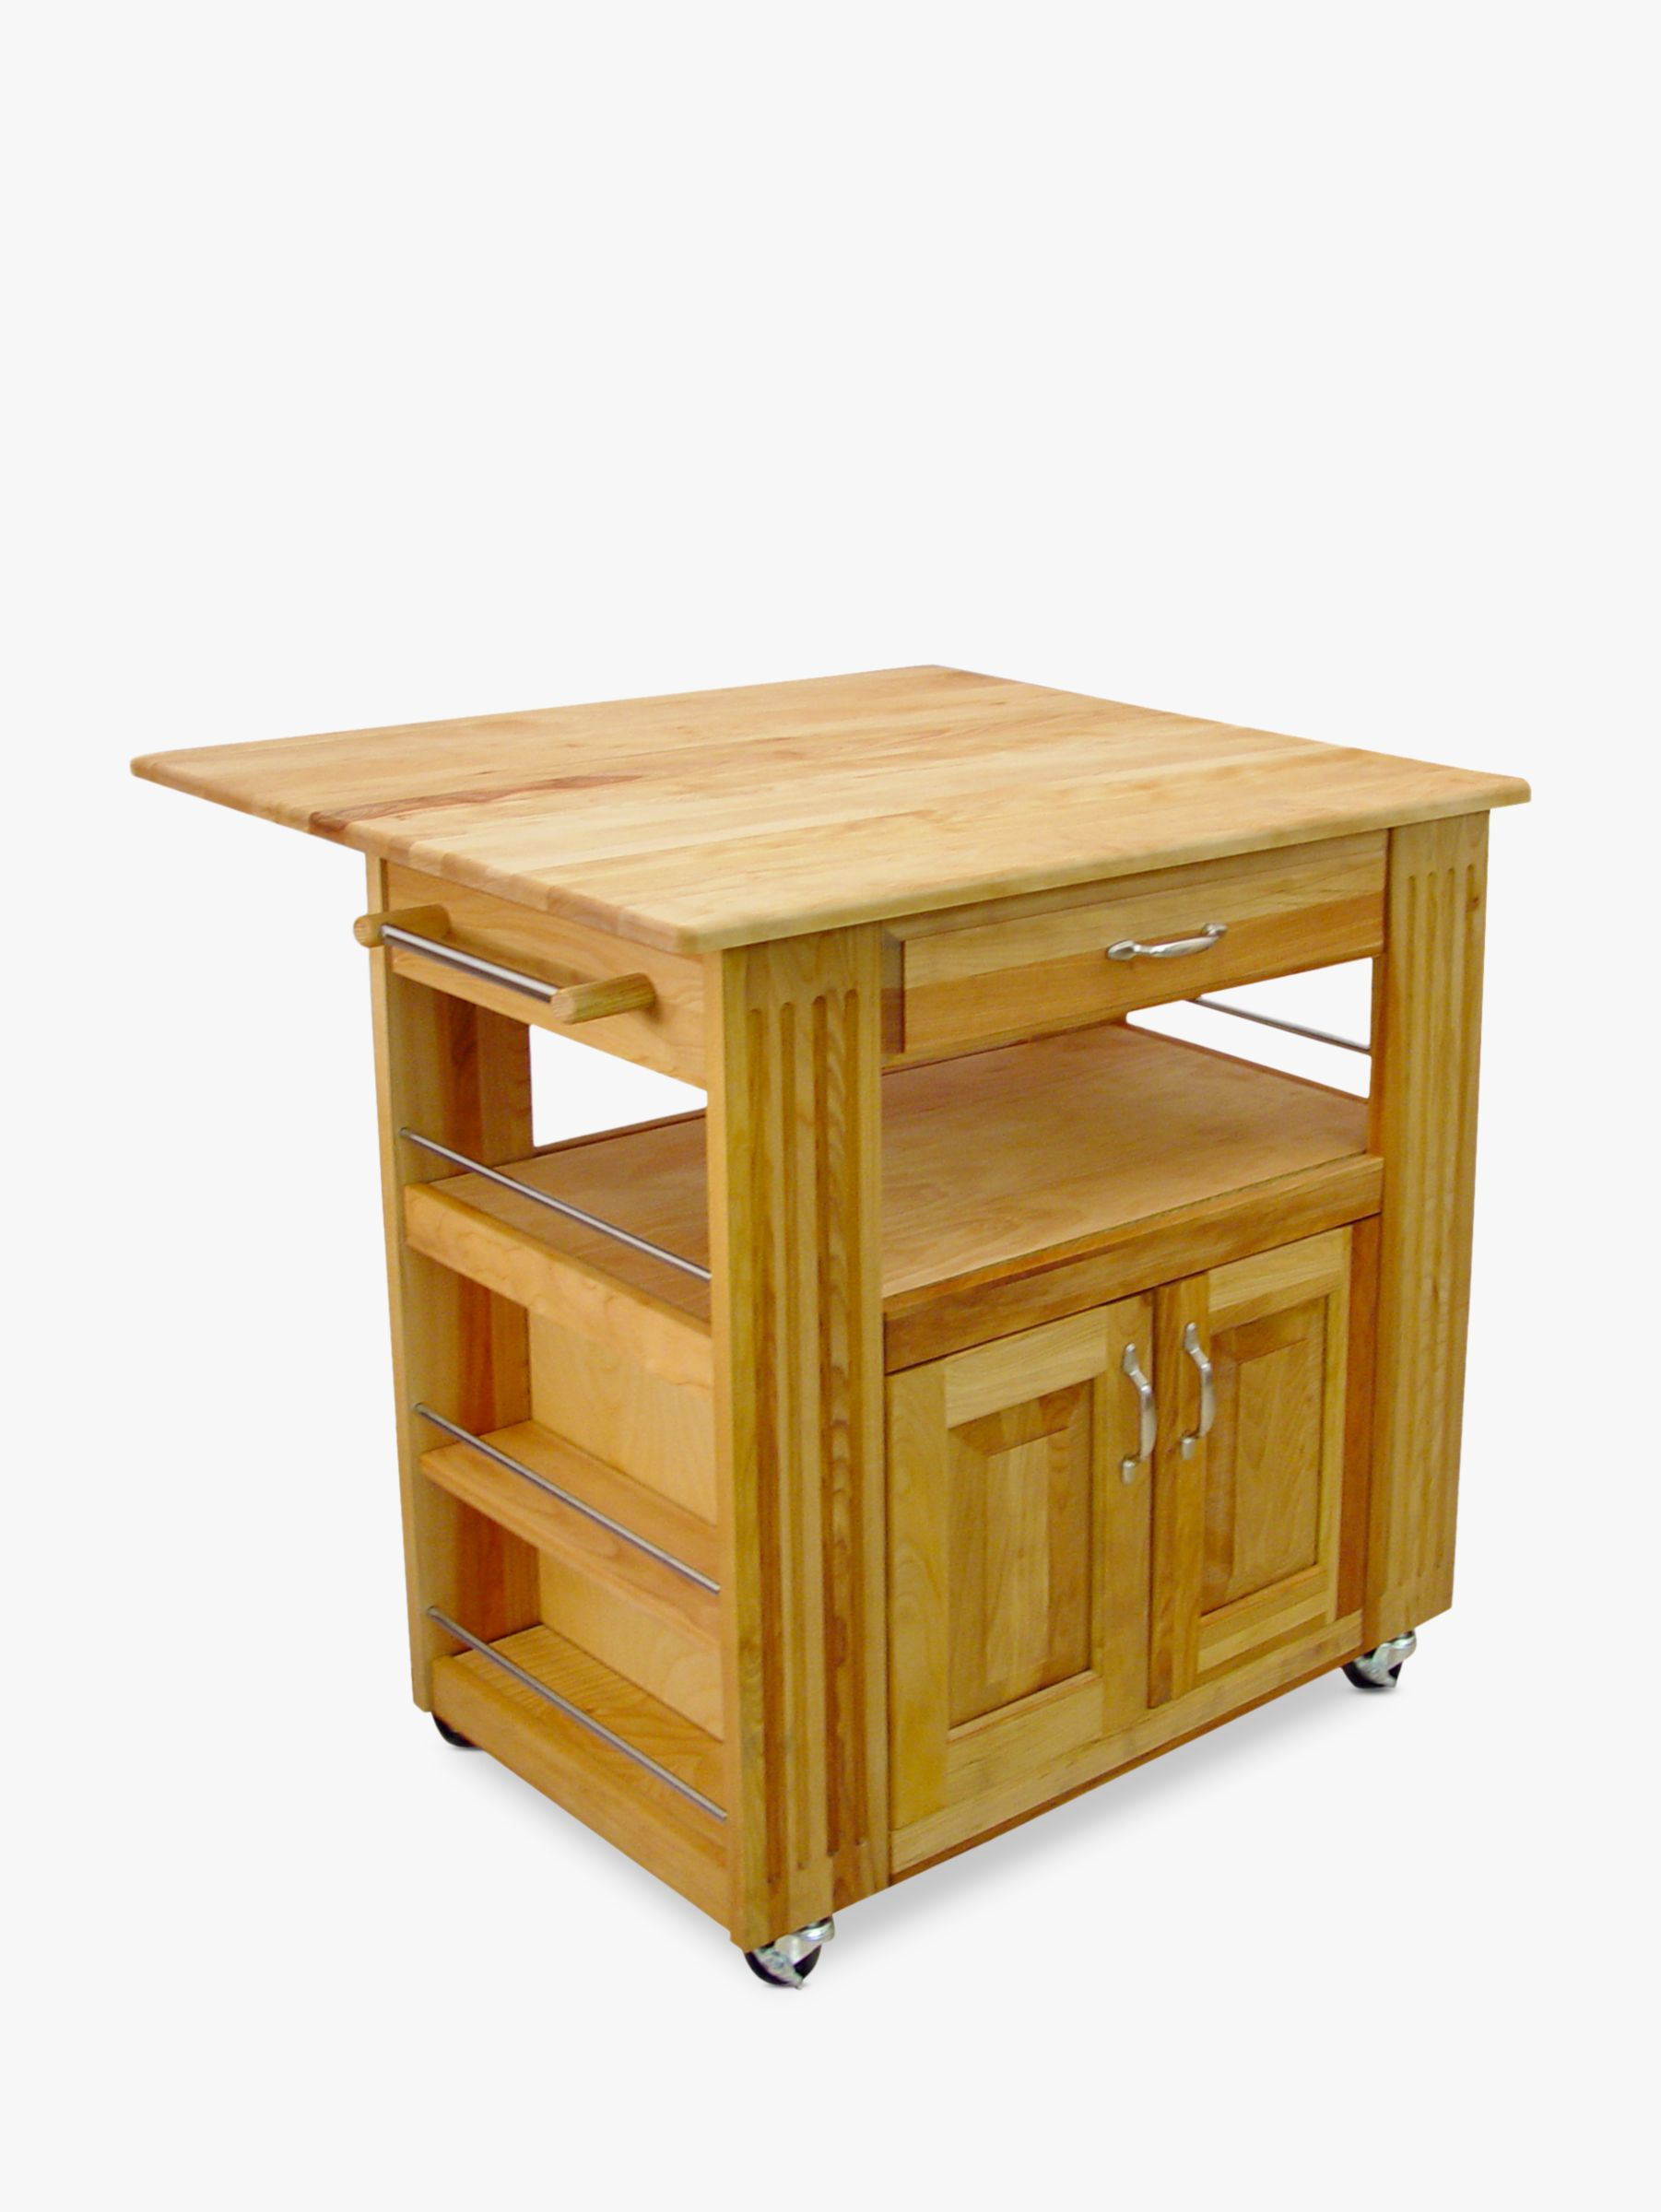 Eddingtons Catskill Wooden Central Kitchen Island With Drop Leaf At John Lewis Partners